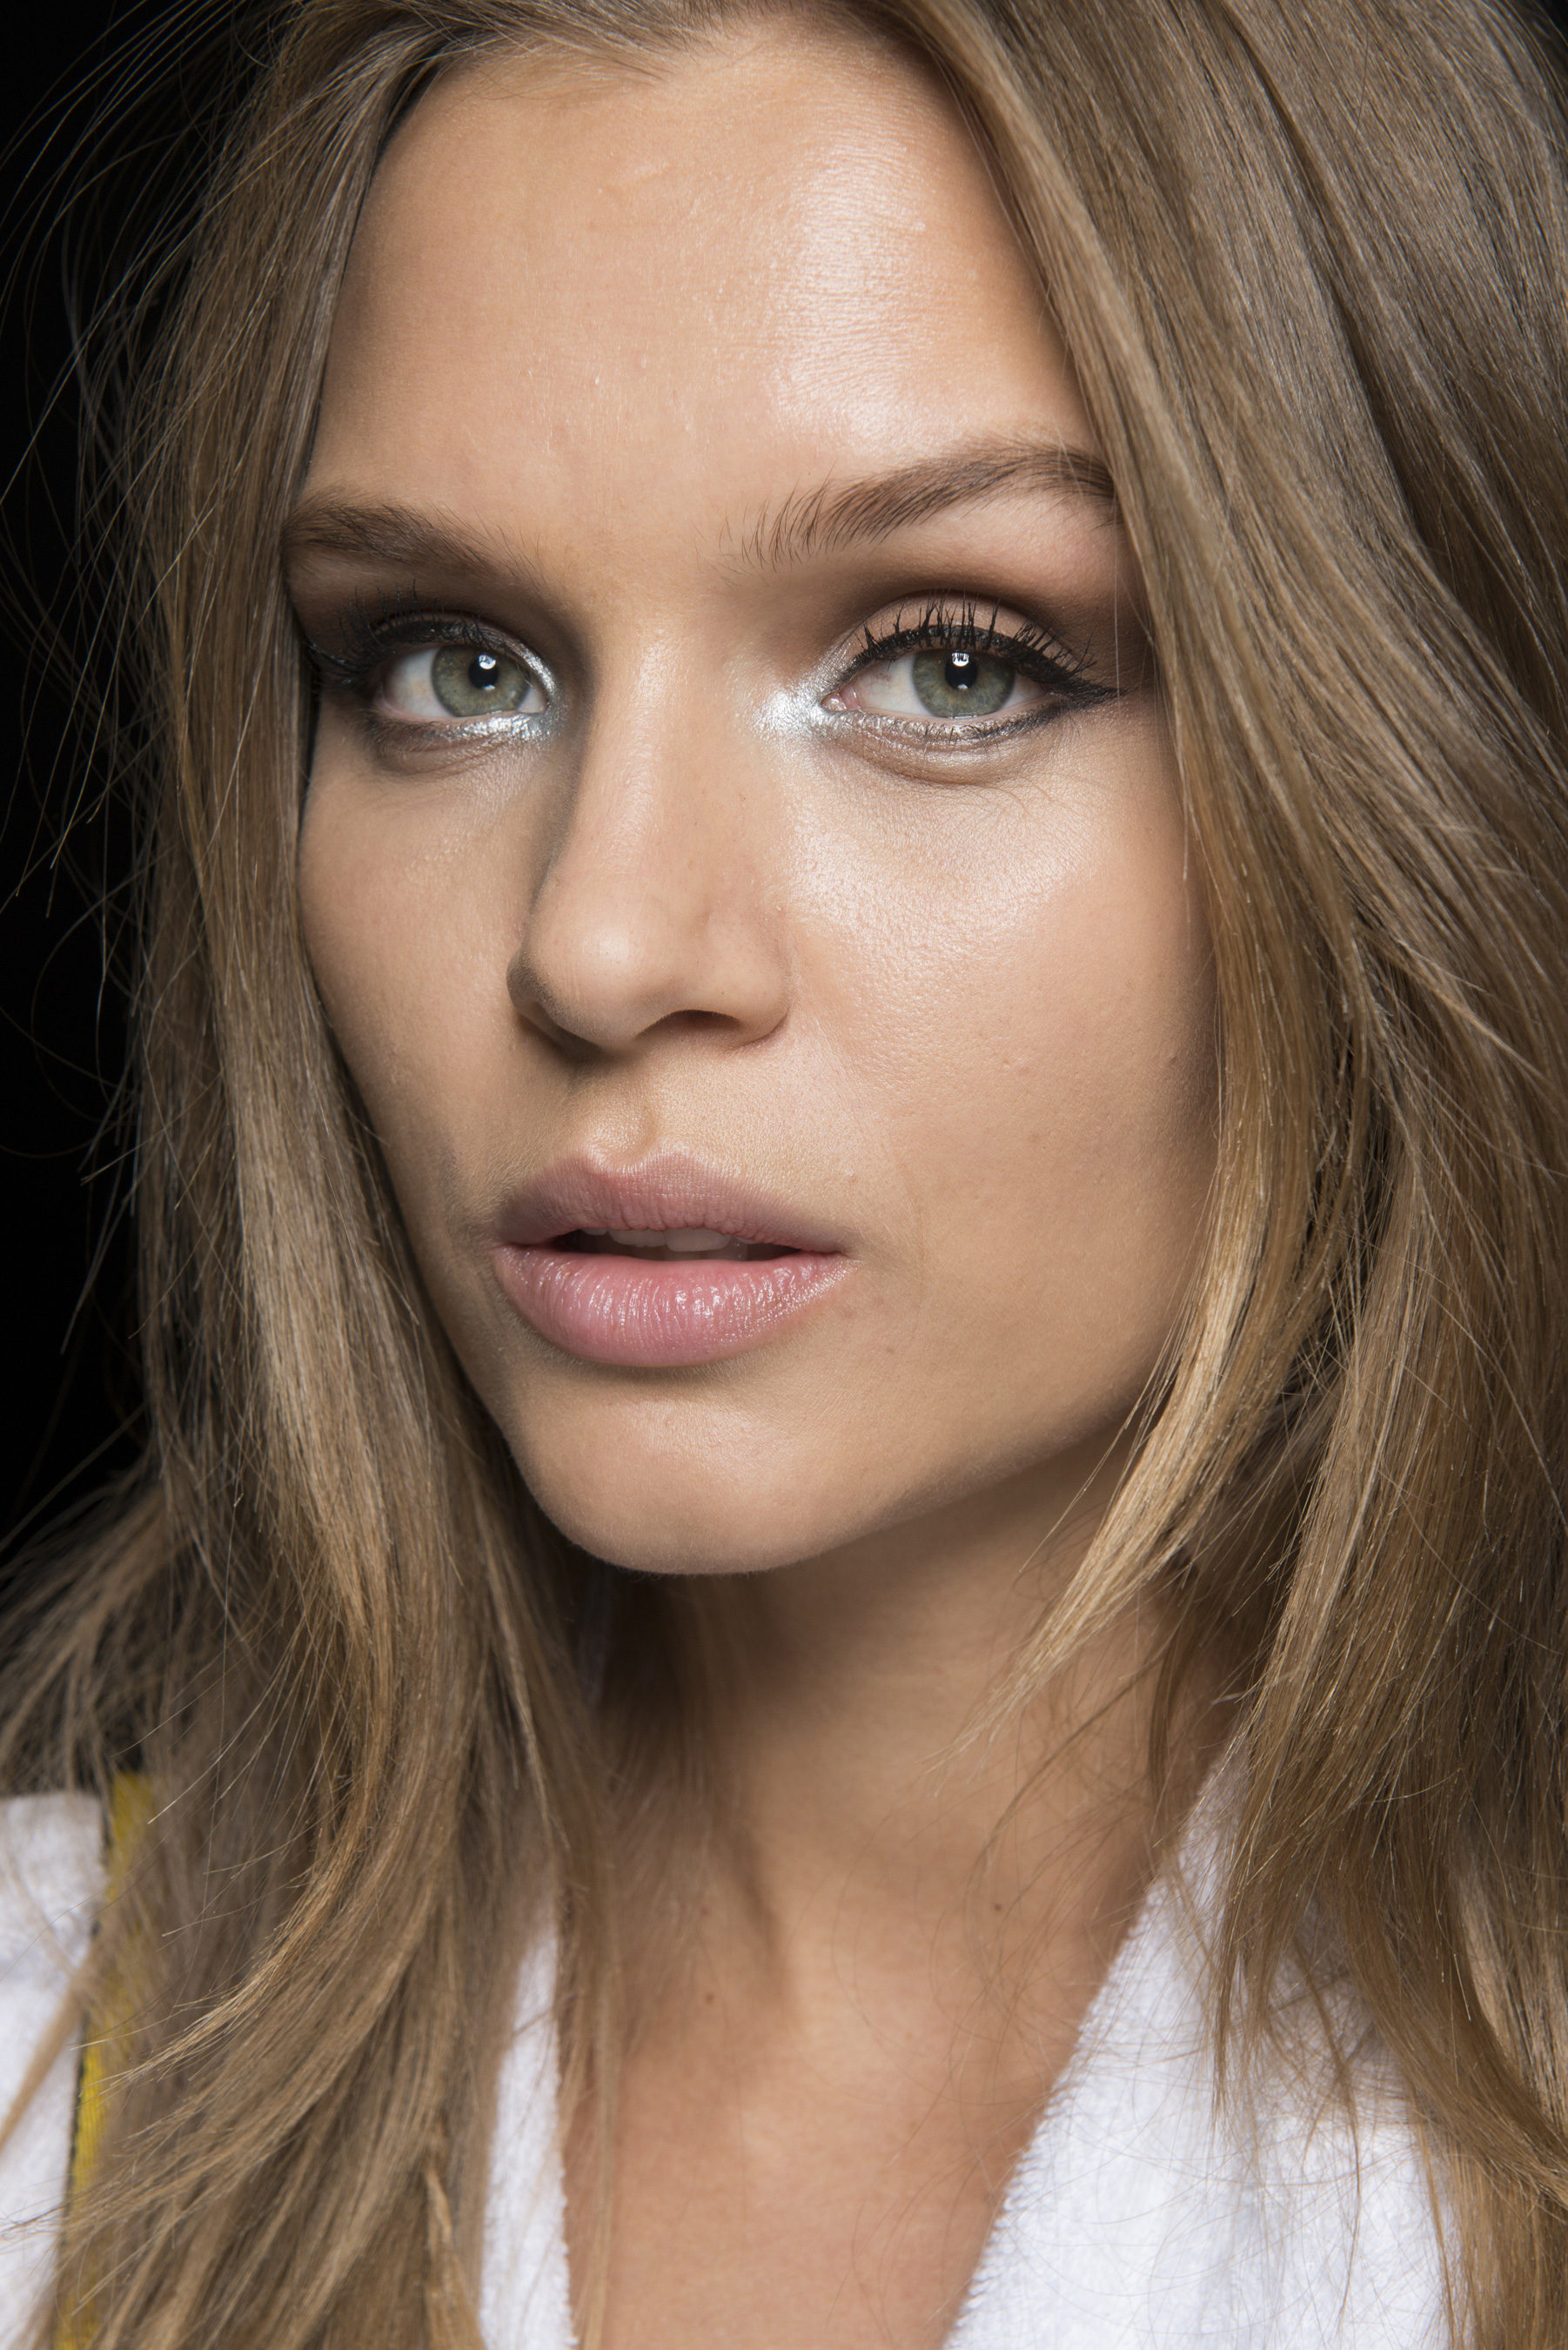 Tommy Hilfiger Spring 2018 Fashion Show Backstage Beauty